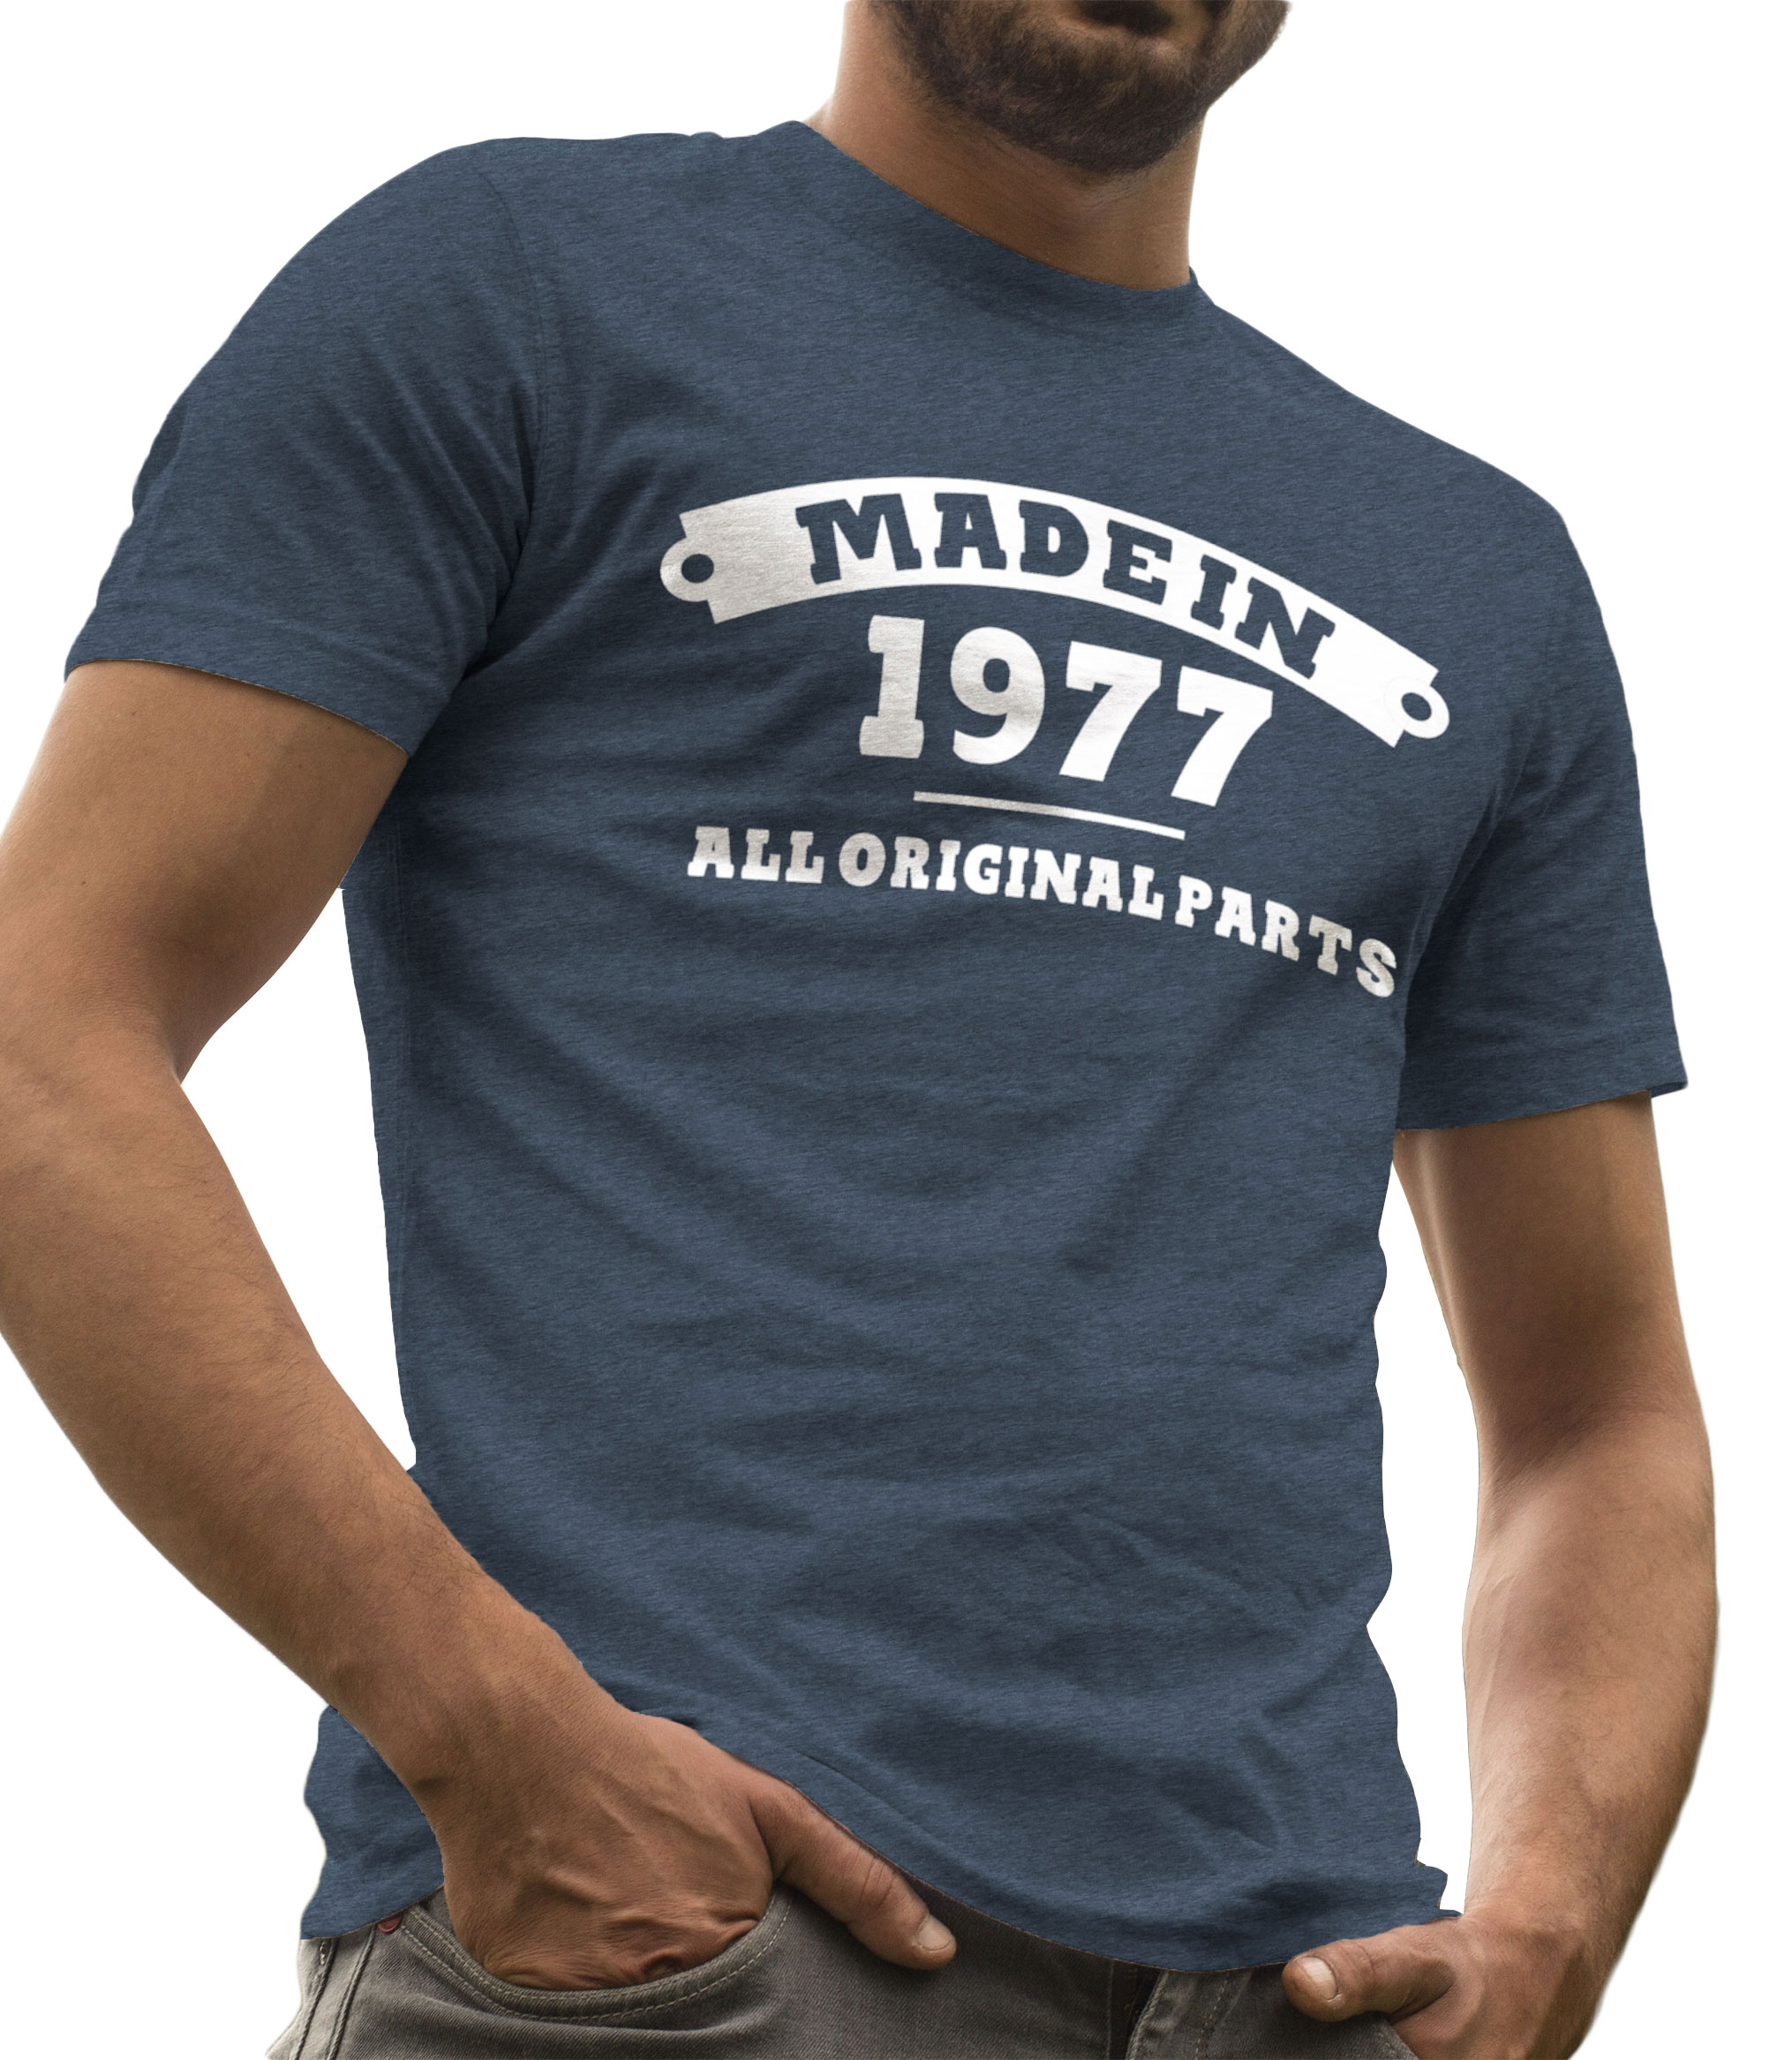 344a2a3036eef 40th Birthday Gifts for Men Made in 1977 All Original Parts Shirt by LeRage  Shirts MEN'S Black Large